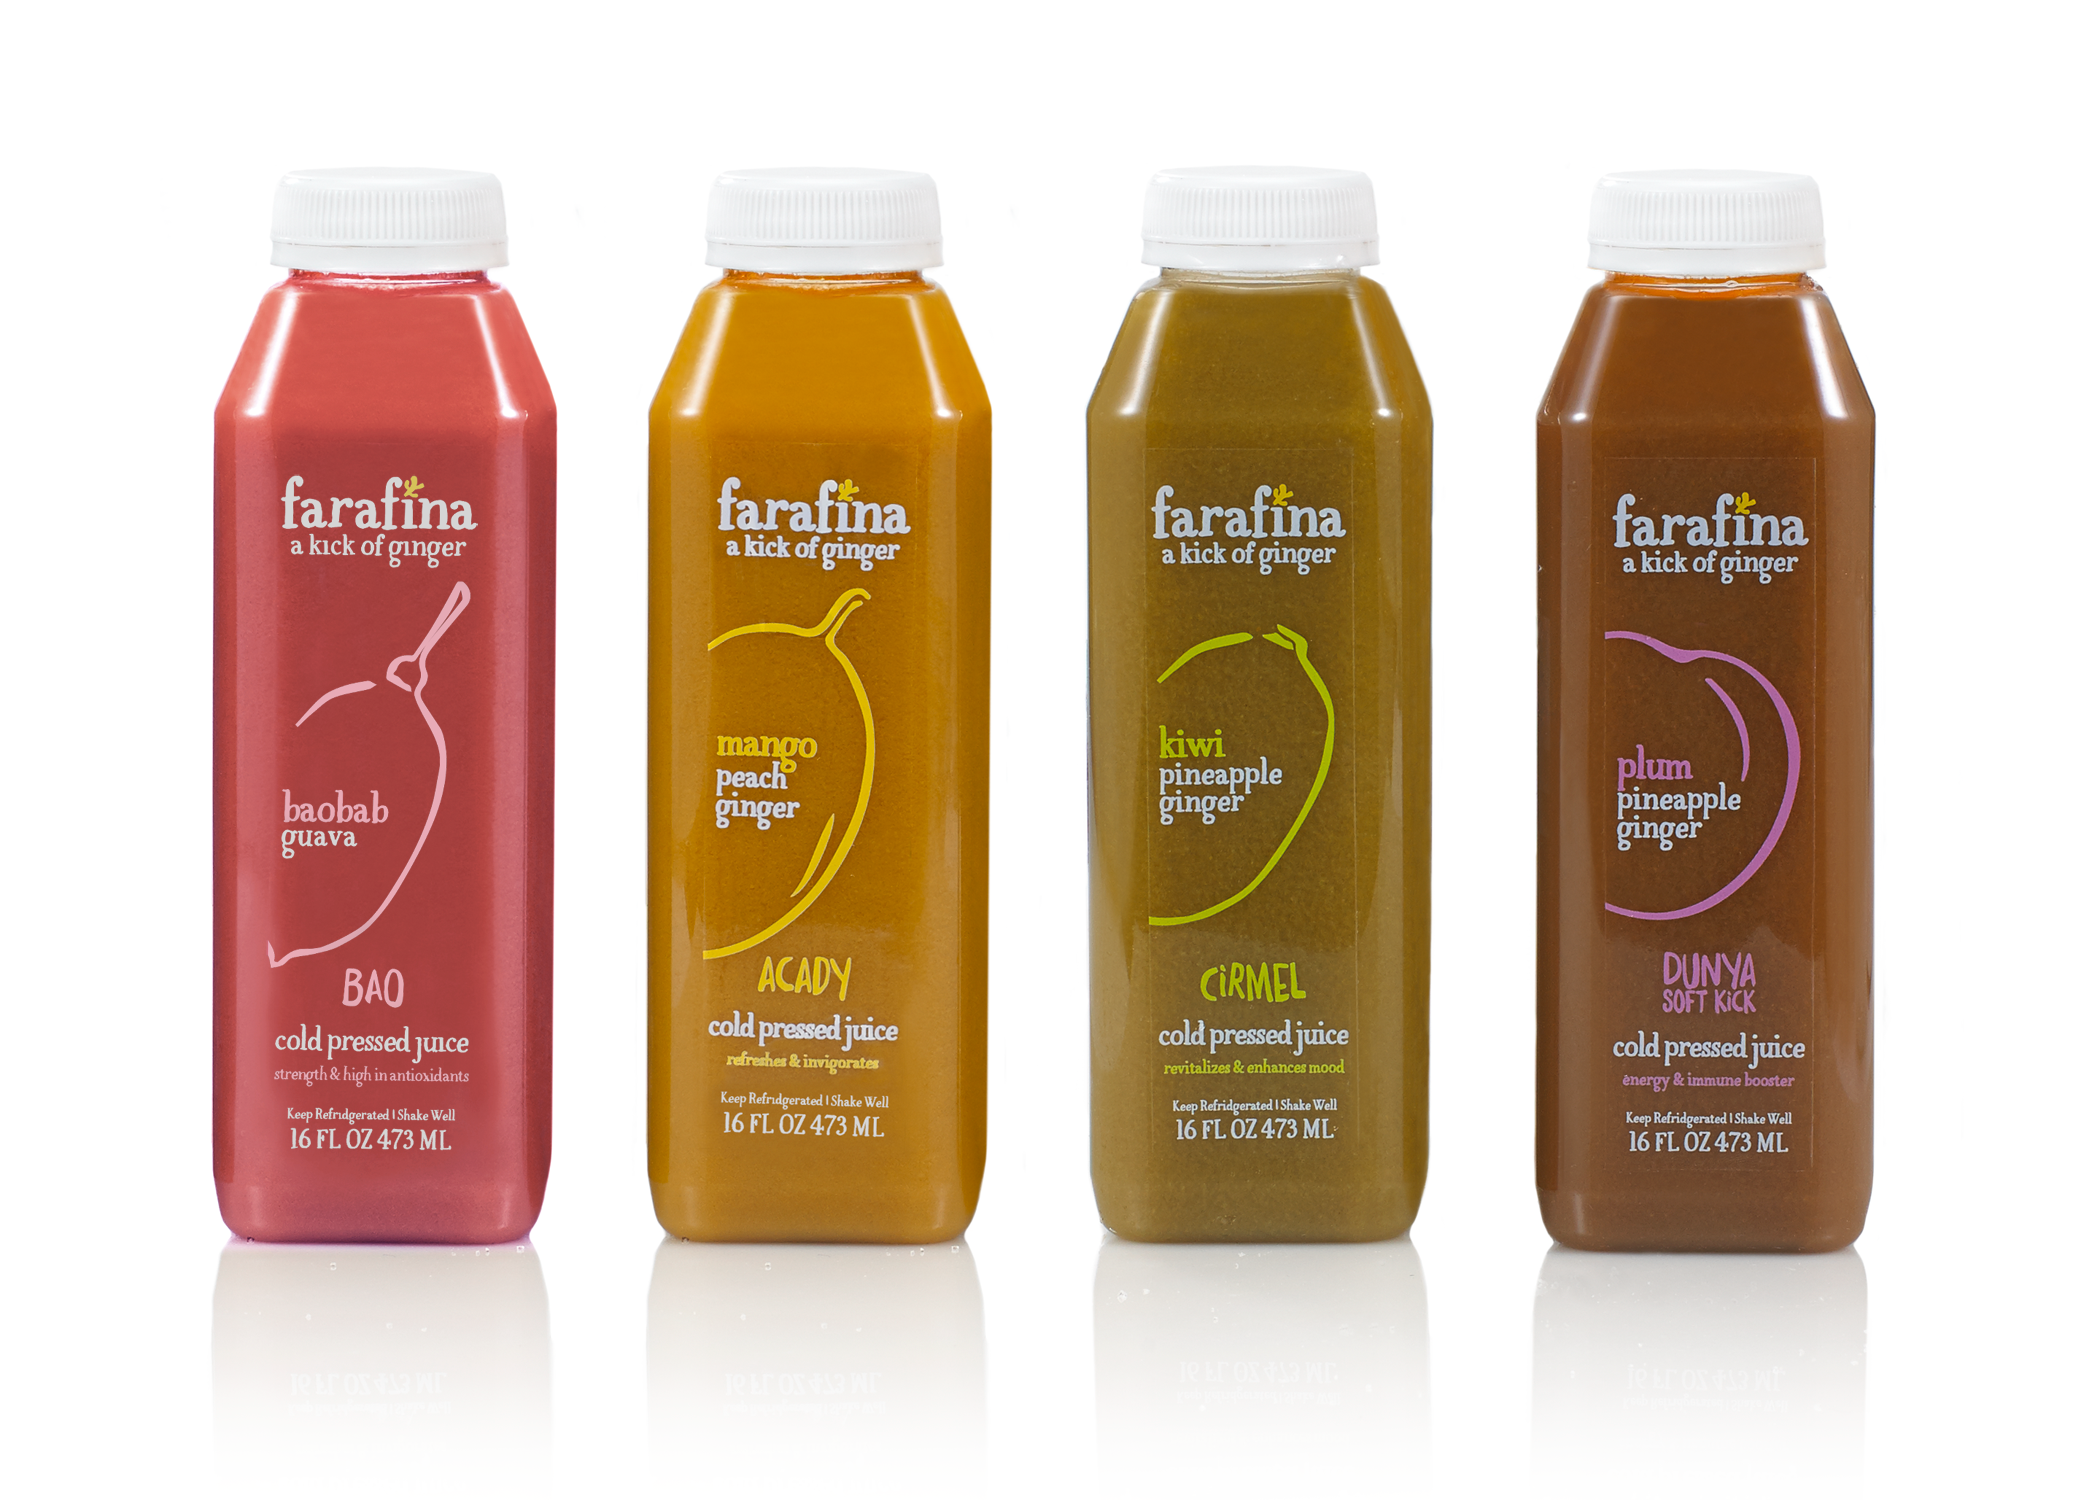 Farafina Juice packaging bottle designs with vibrant, hand drawn, rustic illustrations of the main fruit in 4 juices.